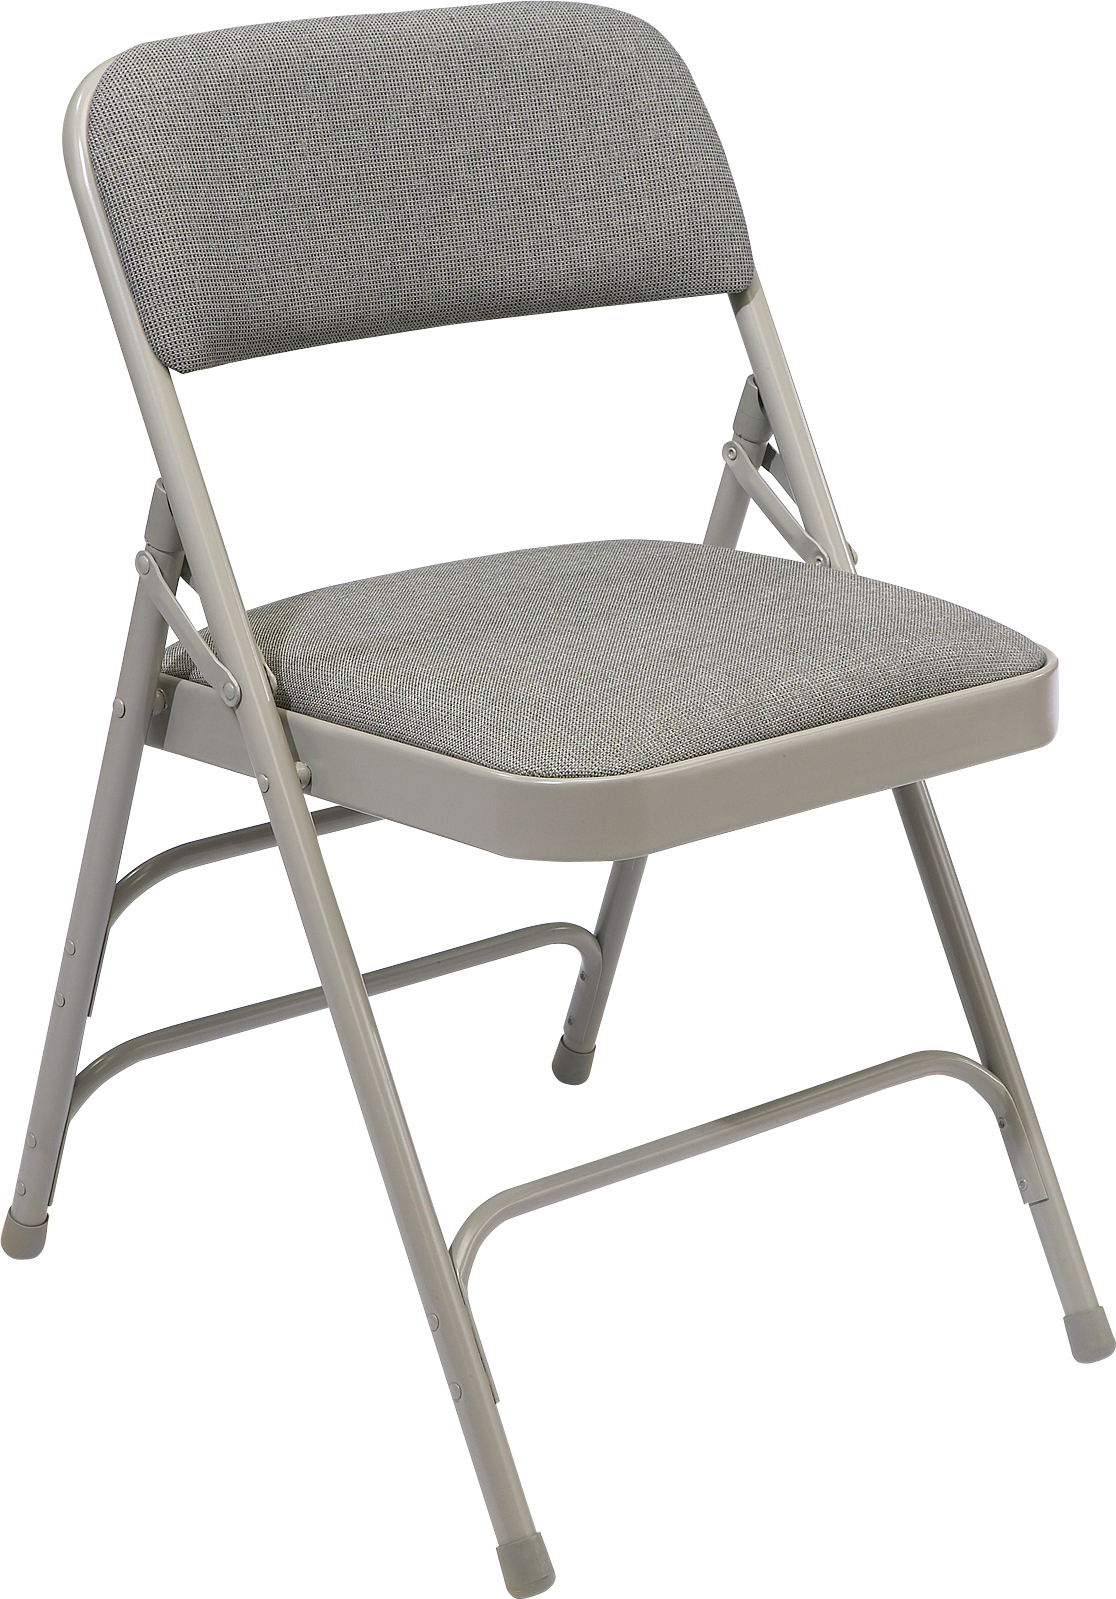 Chair Price Folding Chair Dolly Vertical Style